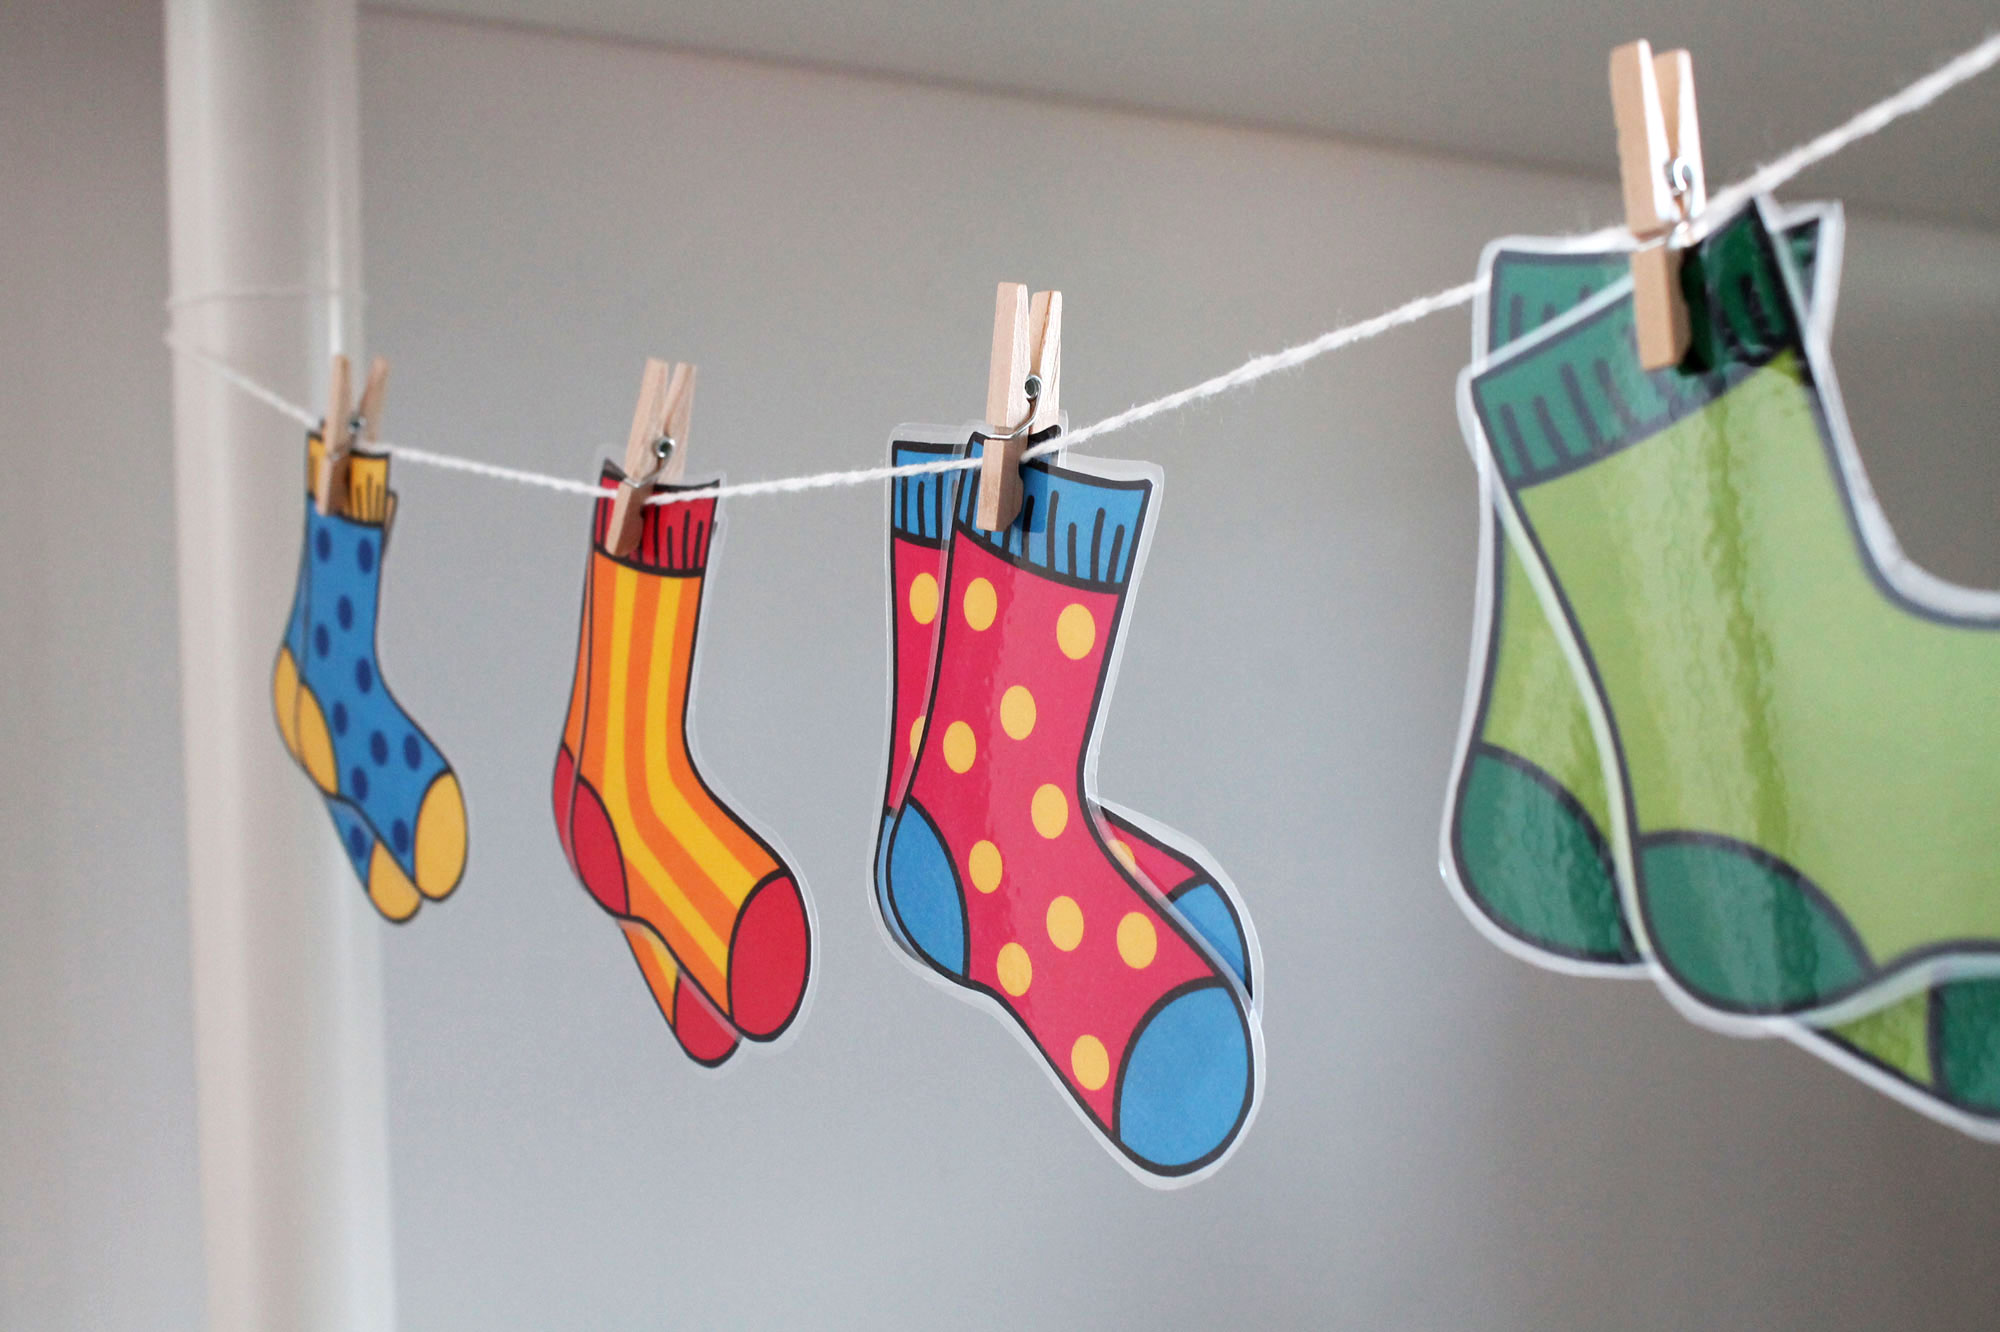 free printable matching socks game - color matching activity for toddlers and preschoolers